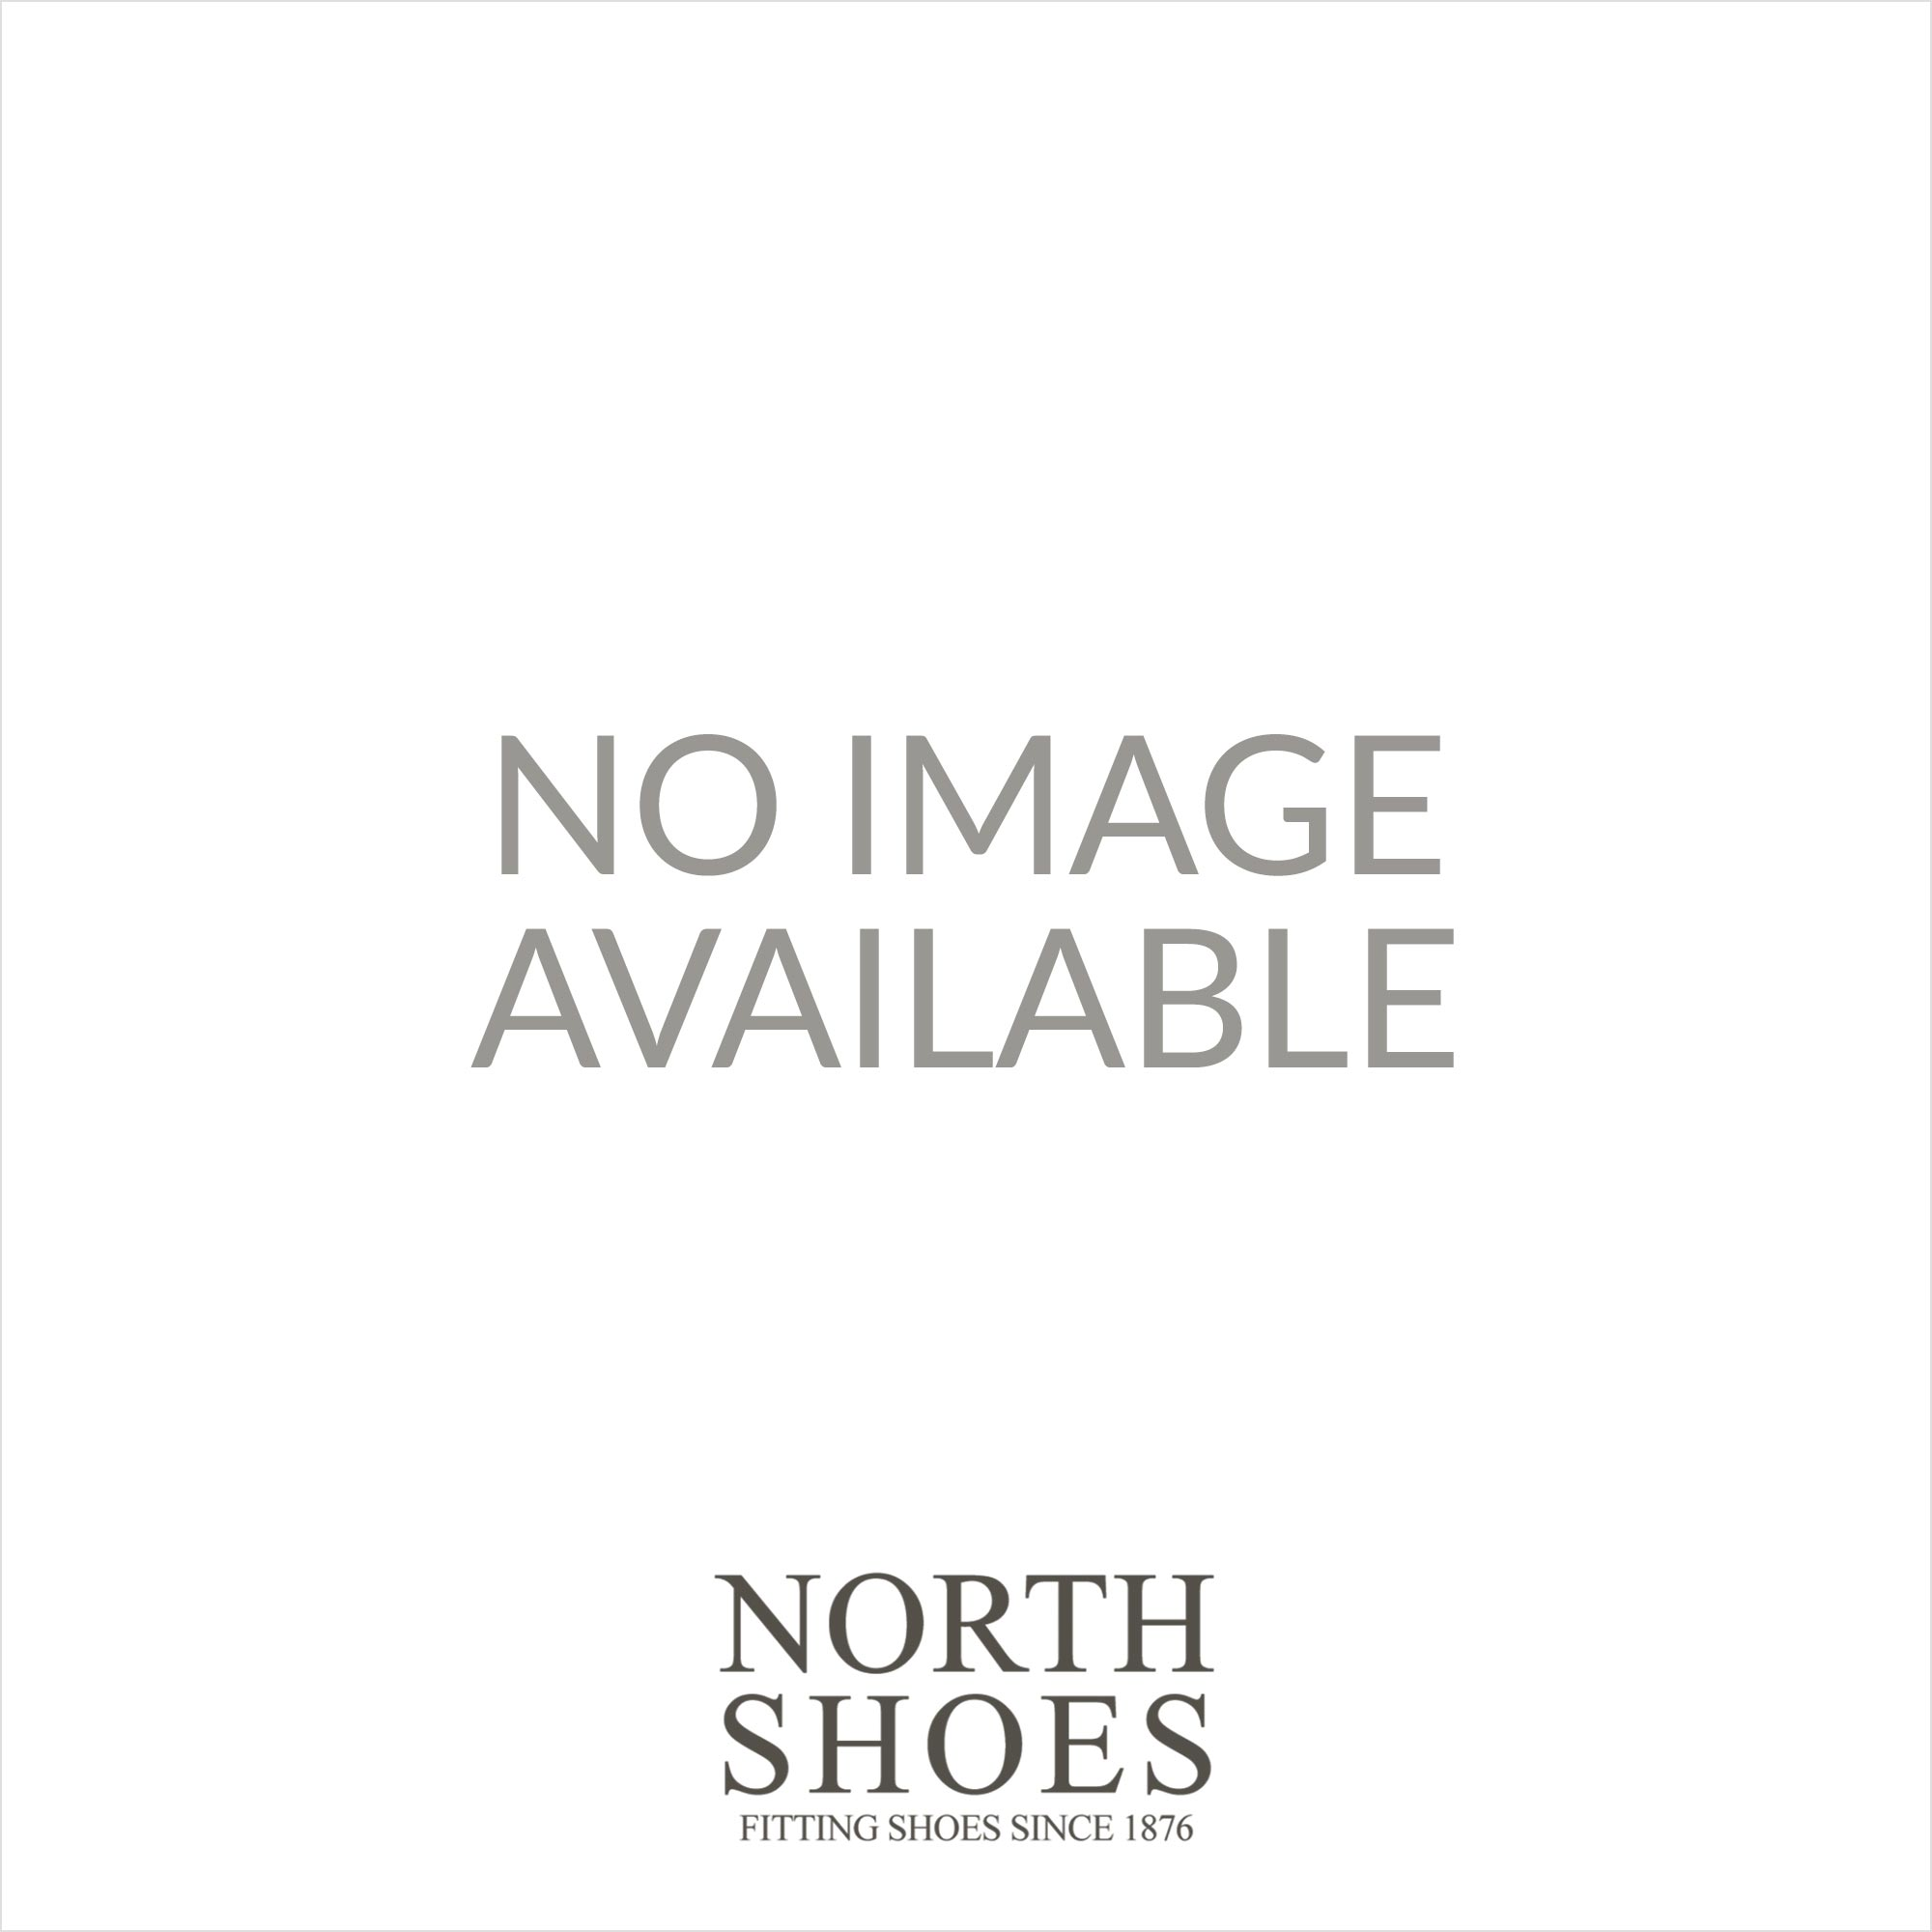 750b4476d Clarks Festival Glory Aqua Patent Leather Womens Mary Jane Shoe - Clarks  from North Shoes UK